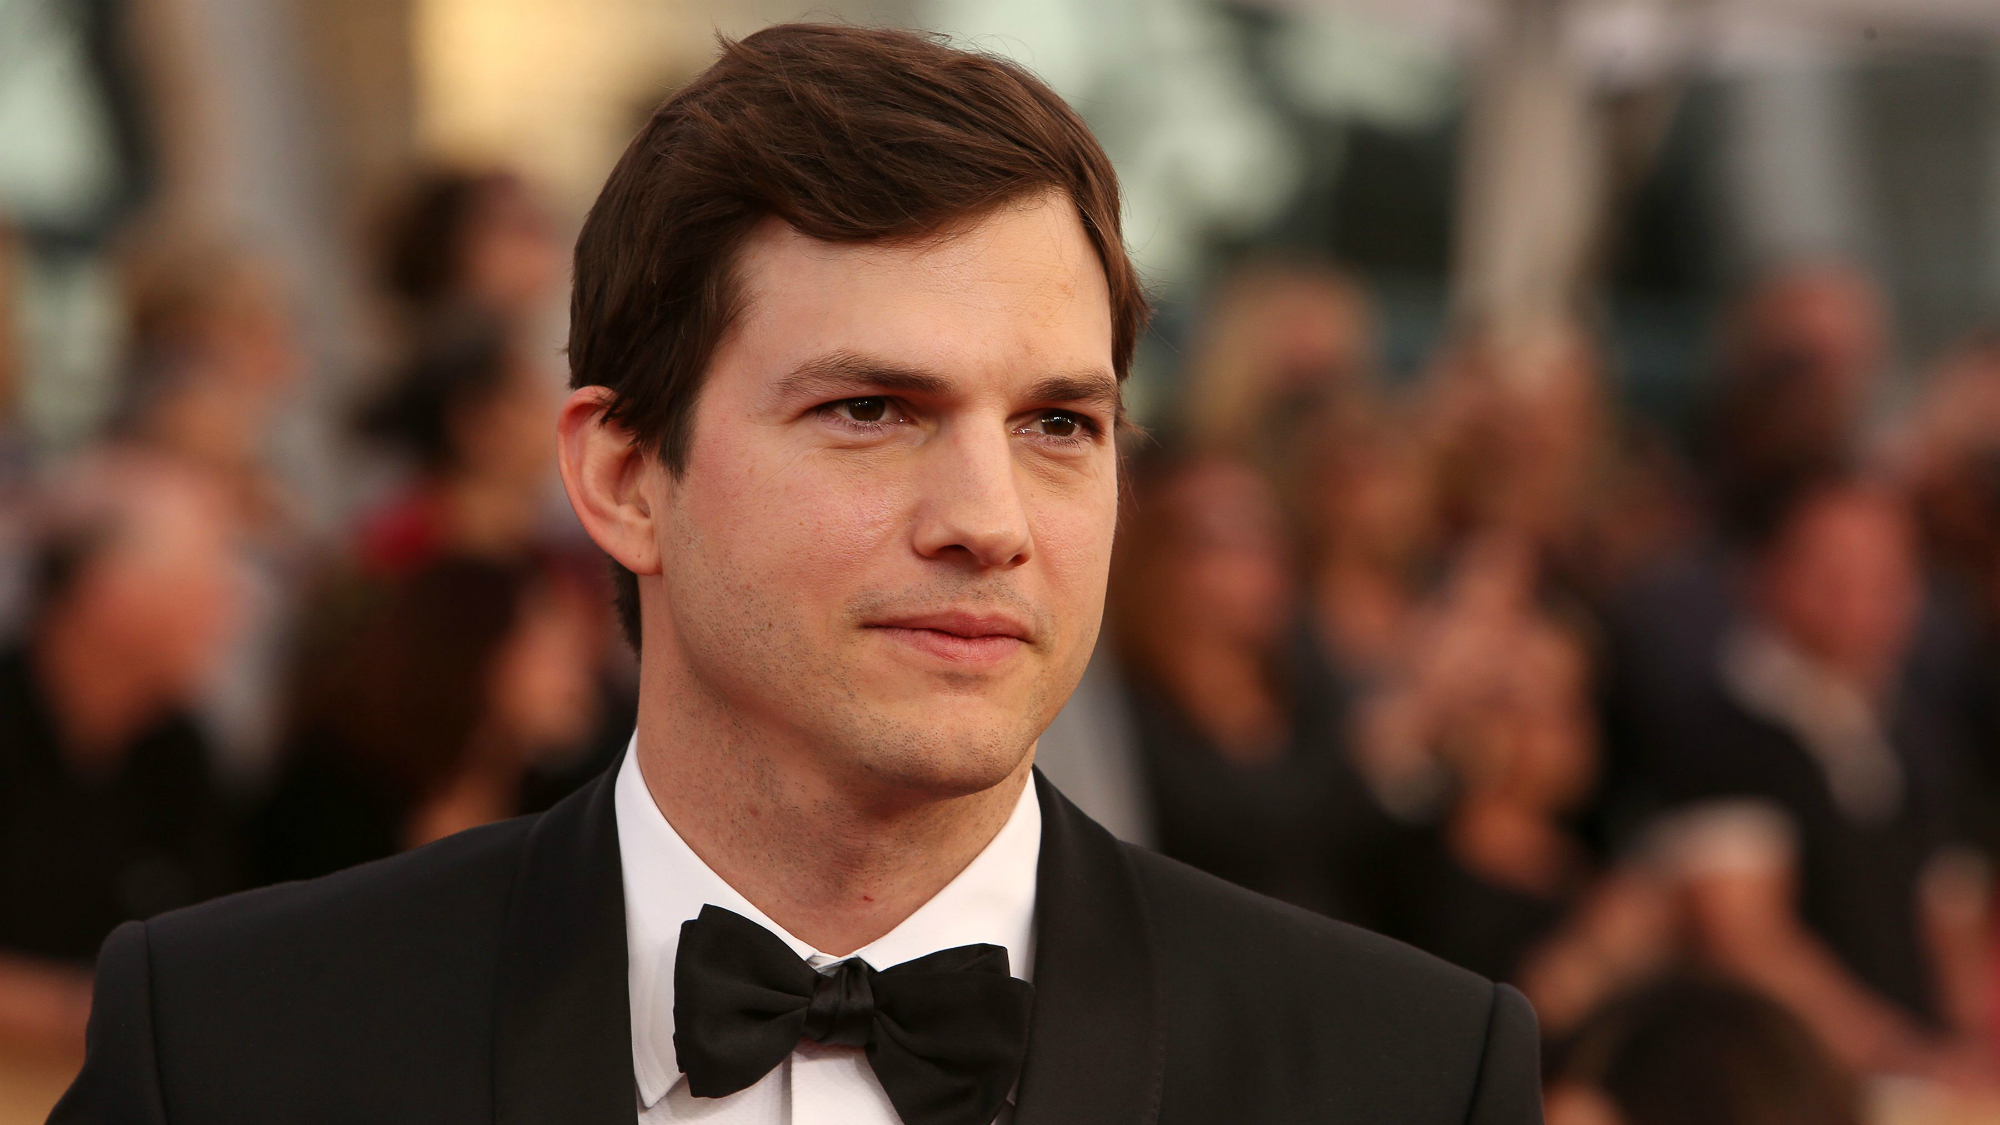 Ashton Kutcher just made an emotional call to end sex trafficking